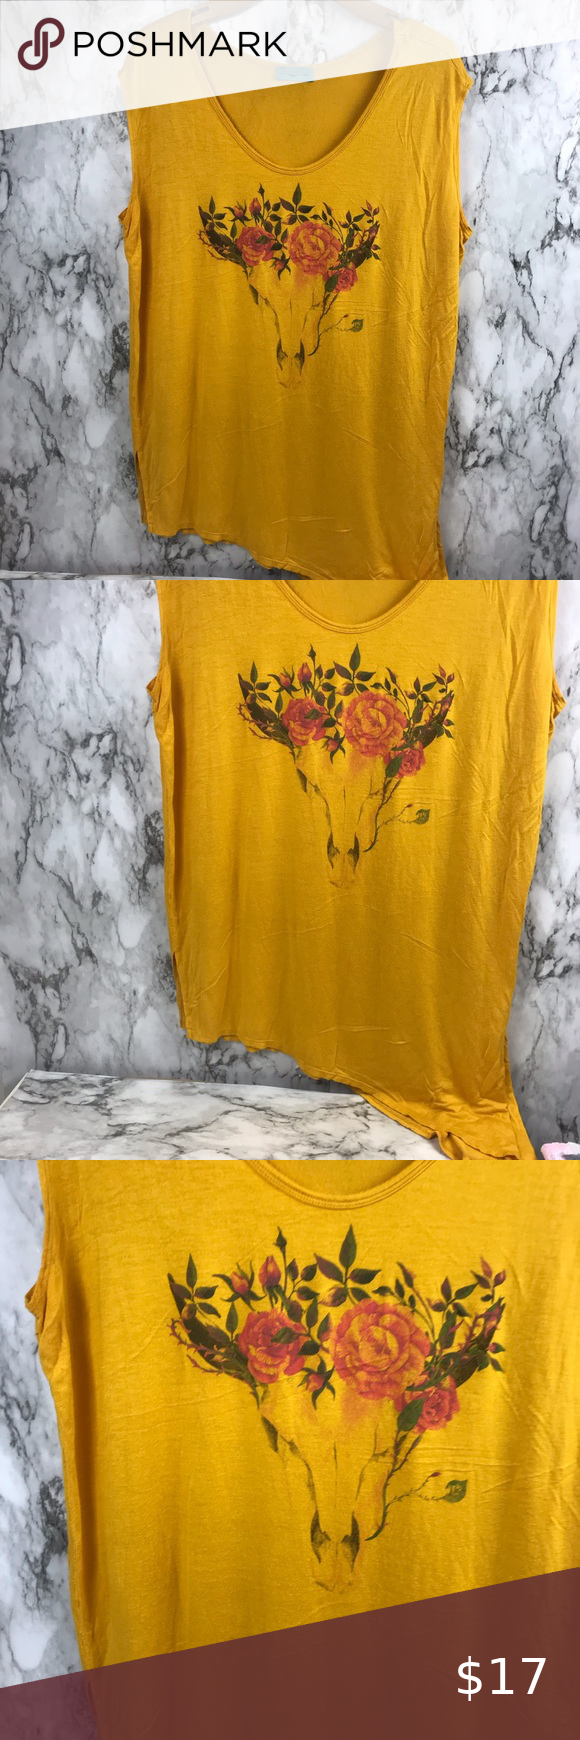 """Bull Skull Longhorn Blouse Mustard Size Large Size Large but oversized. Please check measurements Pit to pit 26"""" Length is 30"""" #003 Tops Blouses"""